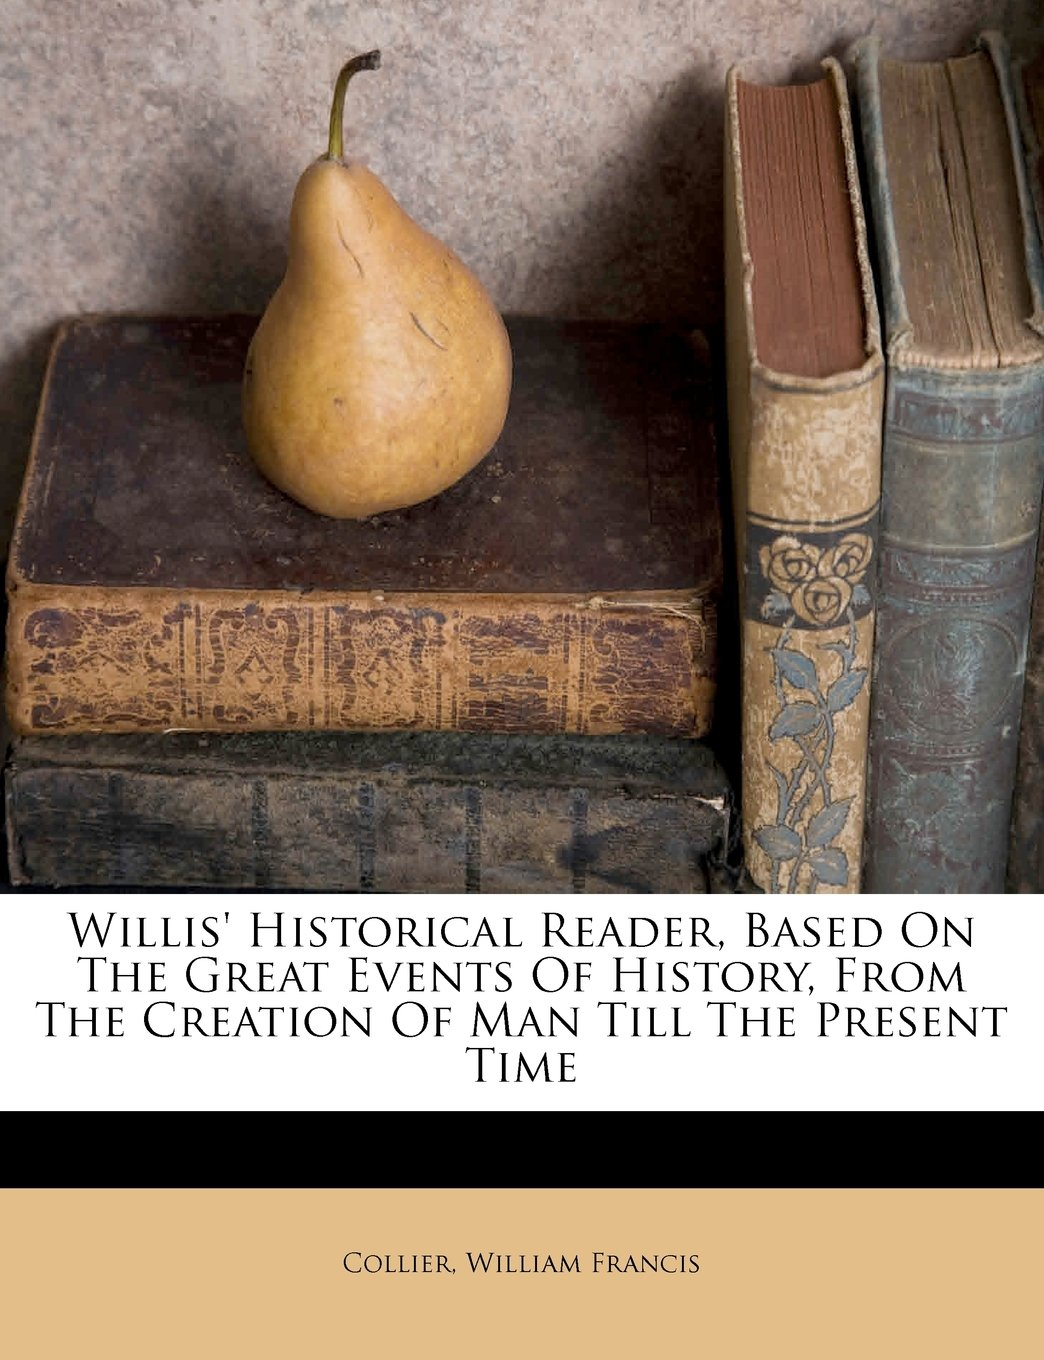 Willis' Historical Reader, Based On The Great Events Of History, From The Creation Of Man Till The Present Time ePub fb2 book